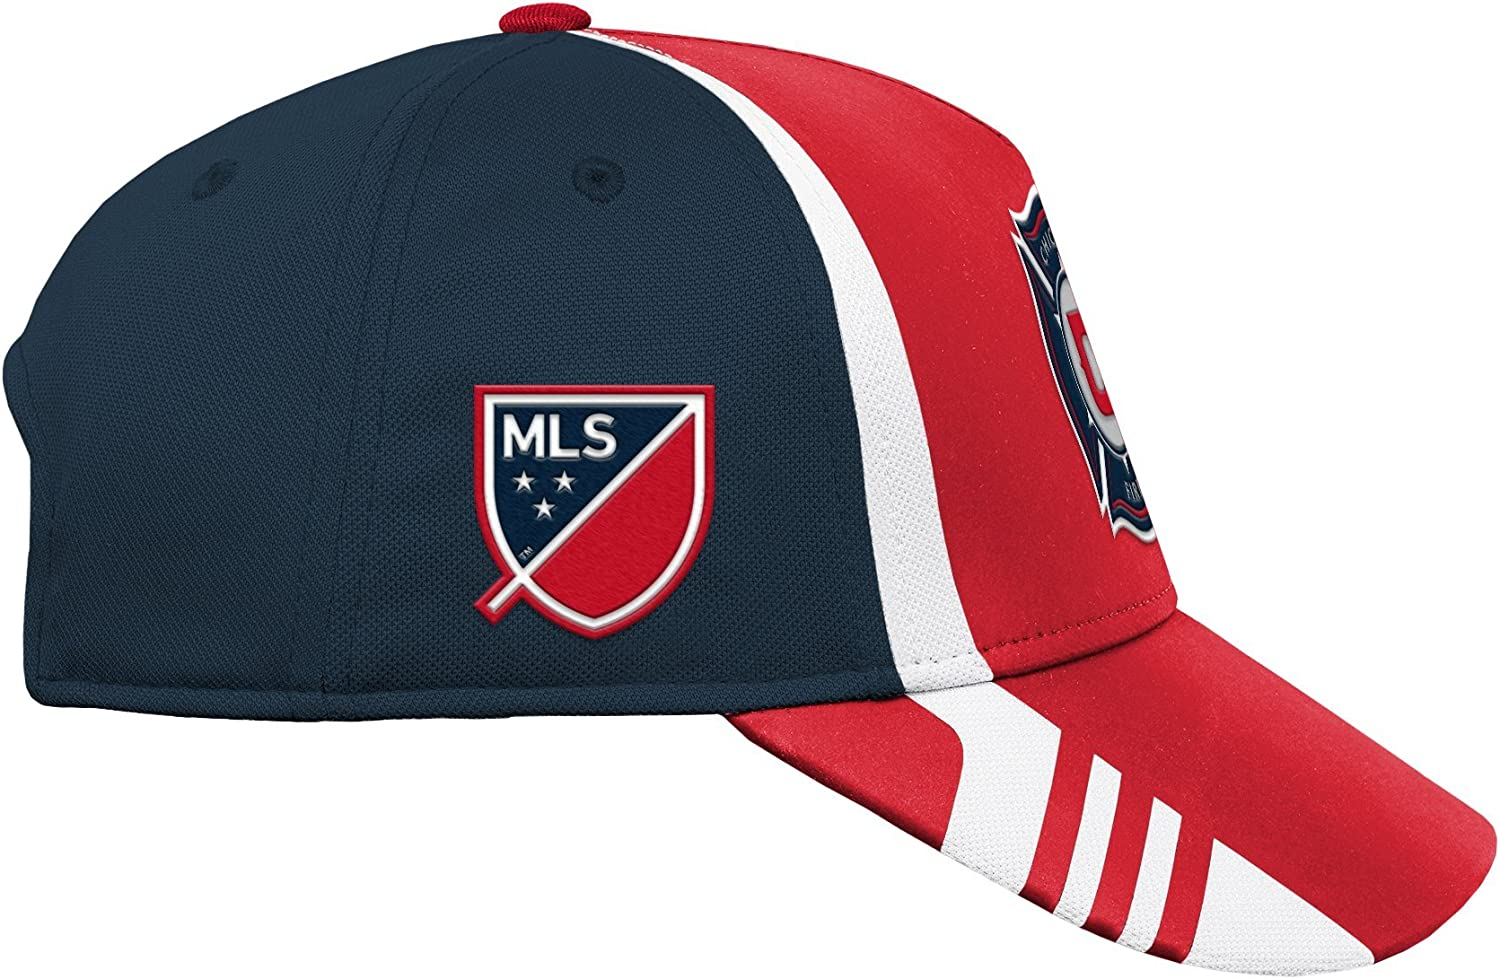 MLS by Outerstuff Boys Structured Adjustable Hat